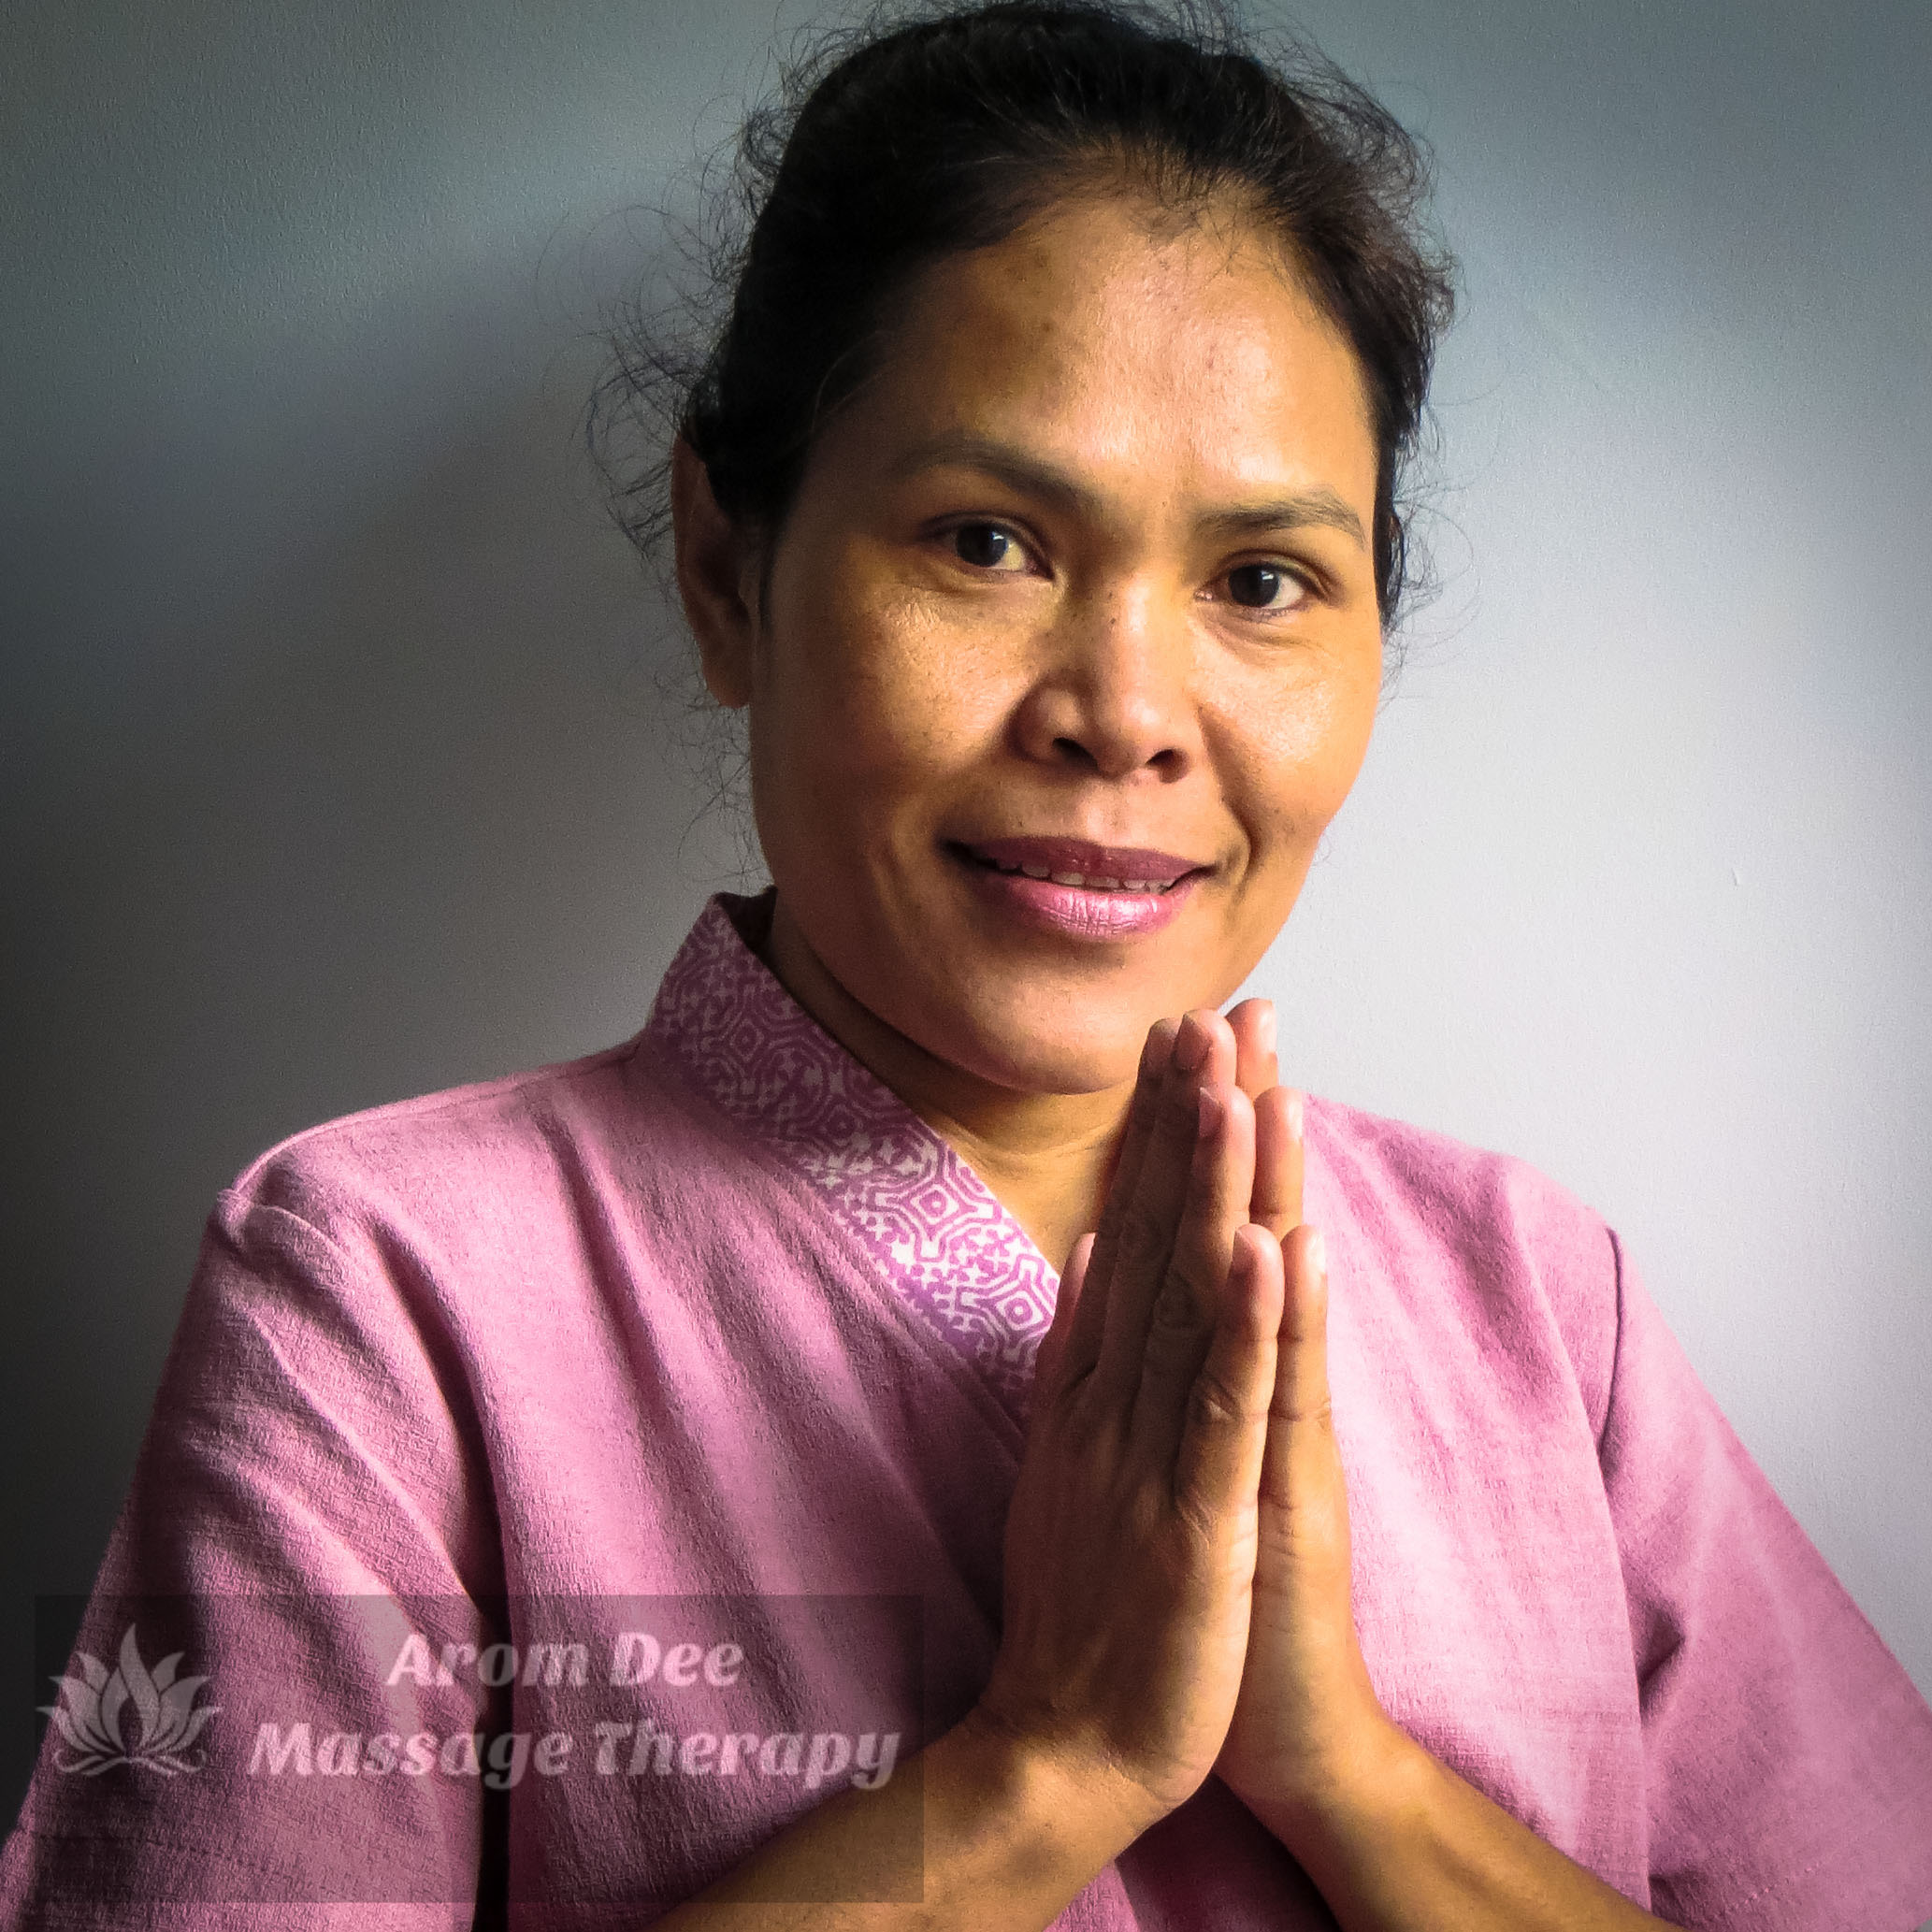 Thai masseuse wearing pink tunic making wai with two hands together as if praying